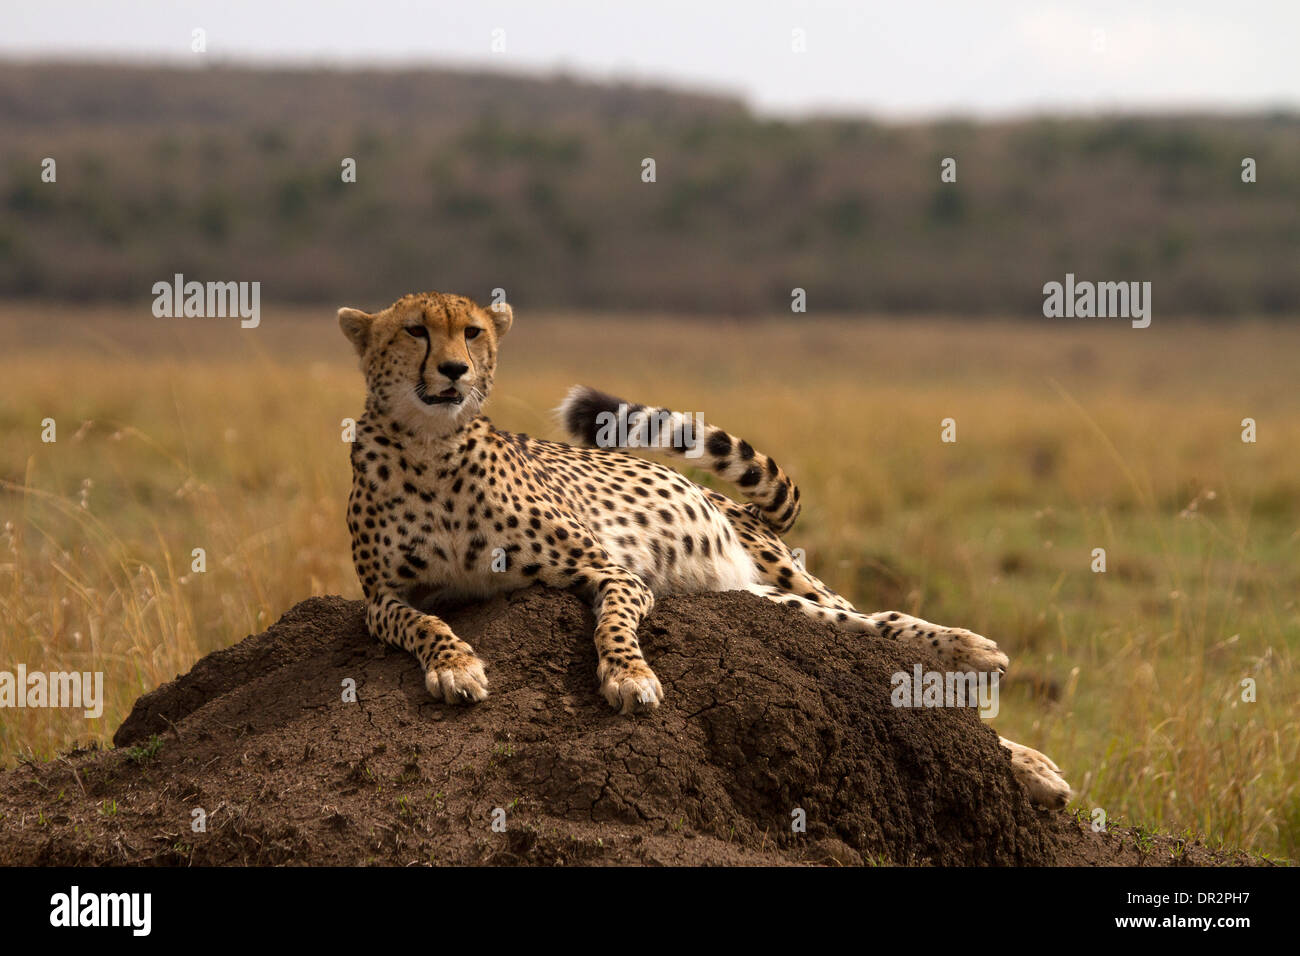 Cheetah, Acinonyx jubatus relaxing on a termite mound - Stock Image